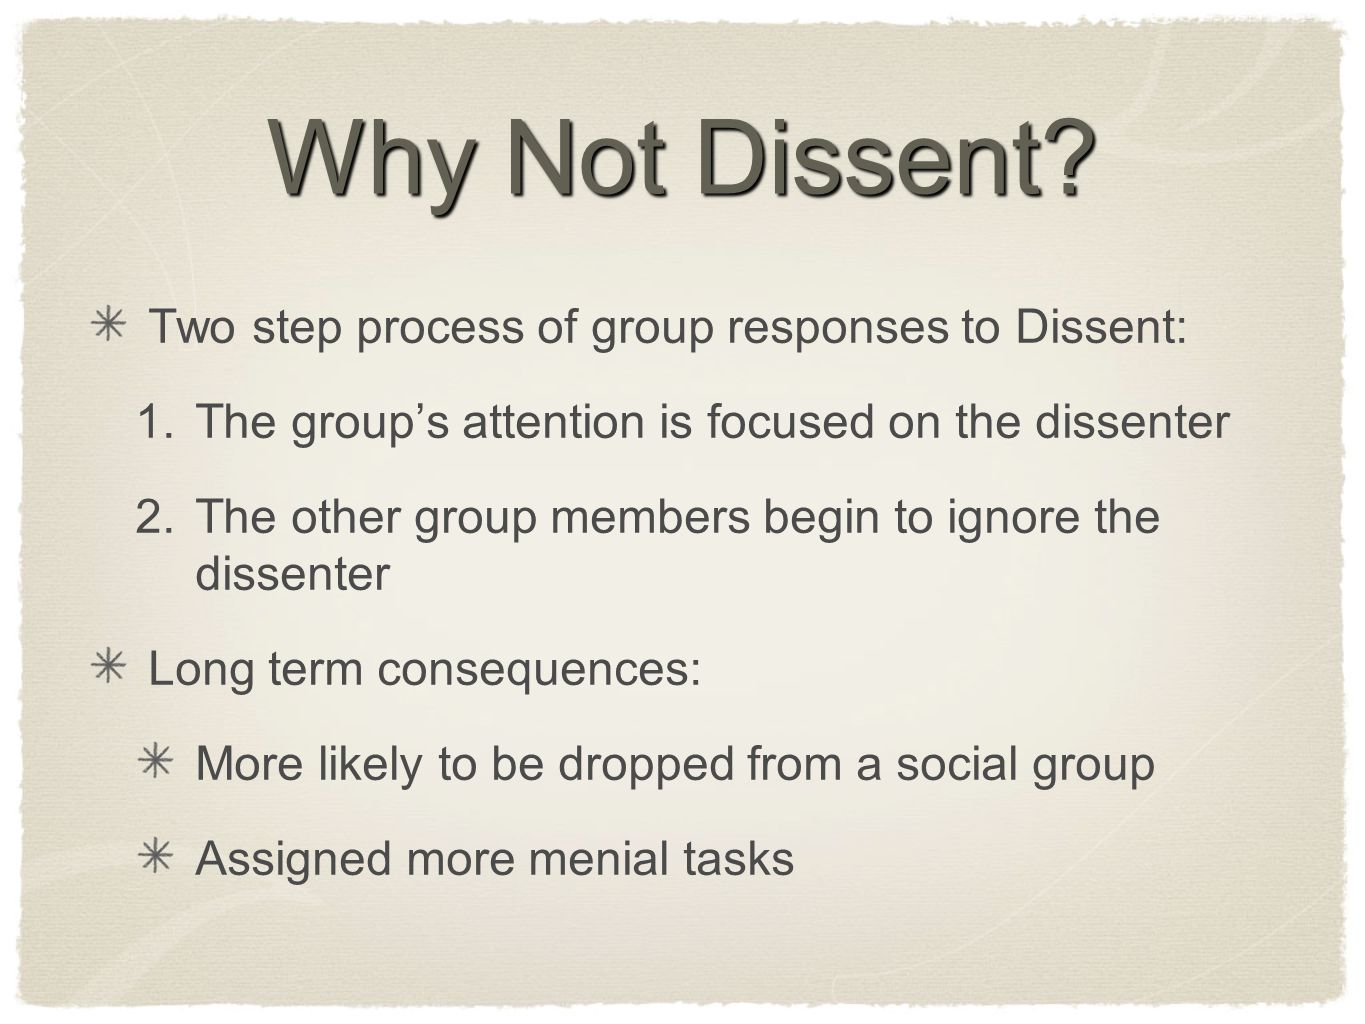 Why Not Dissent? Two step process of group responses to Dissent: 1. The group's attention is focused on the dissenter 2. The other group members begin